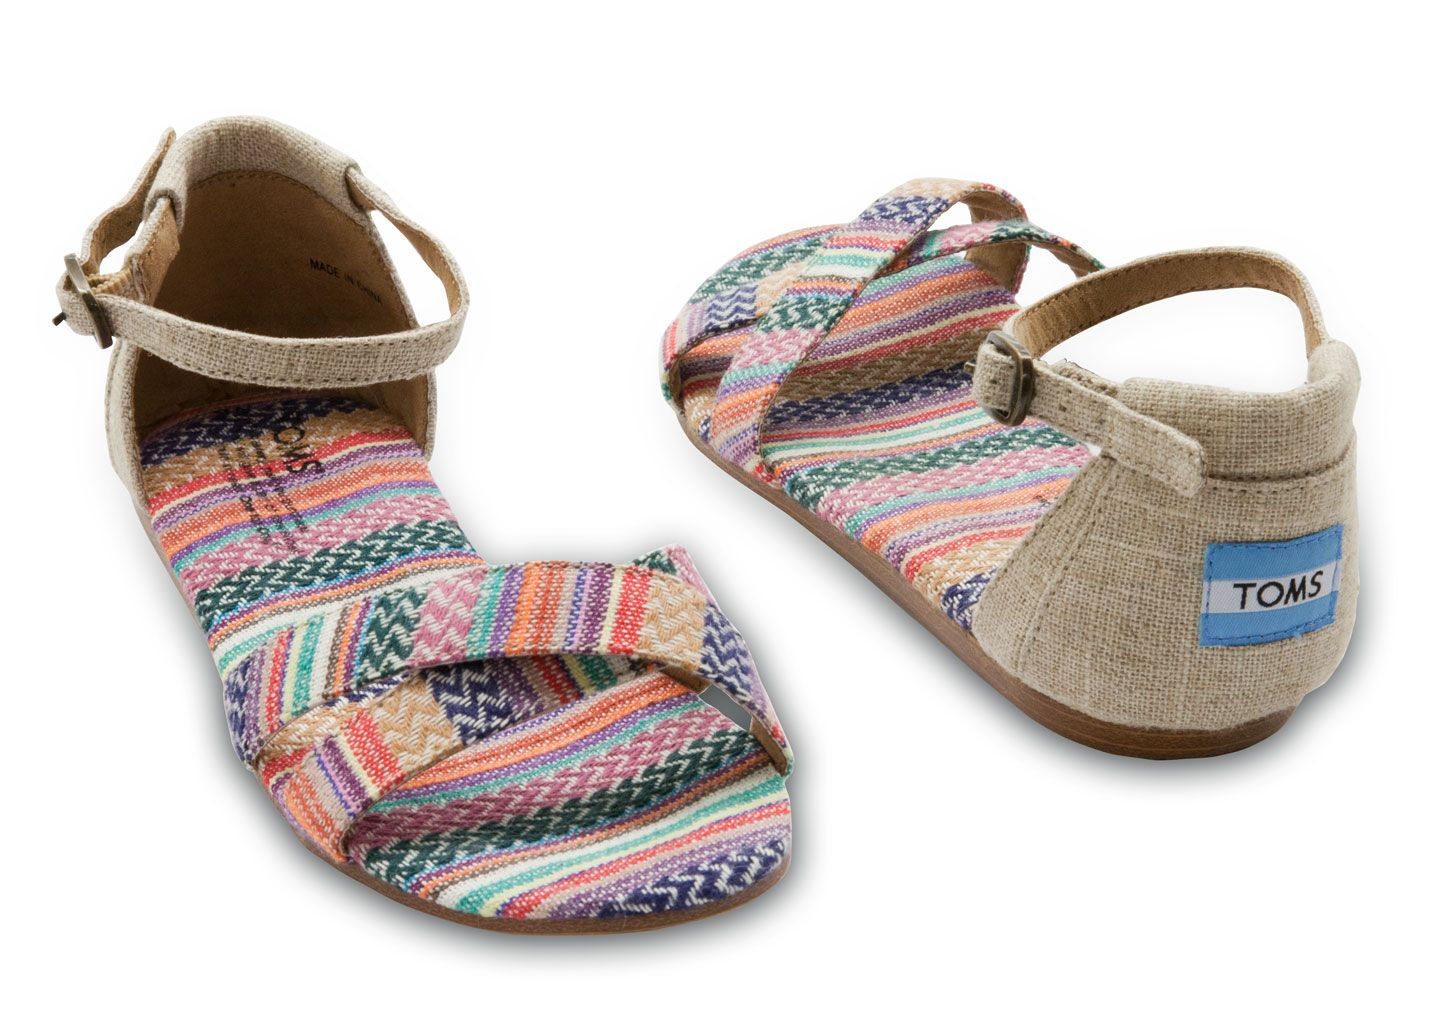 ef6a9c9955e4 TOMS Mixed Woven Burlap Vegan Women s Correa Sandals- perfect for that  beach trip down to Mexico.